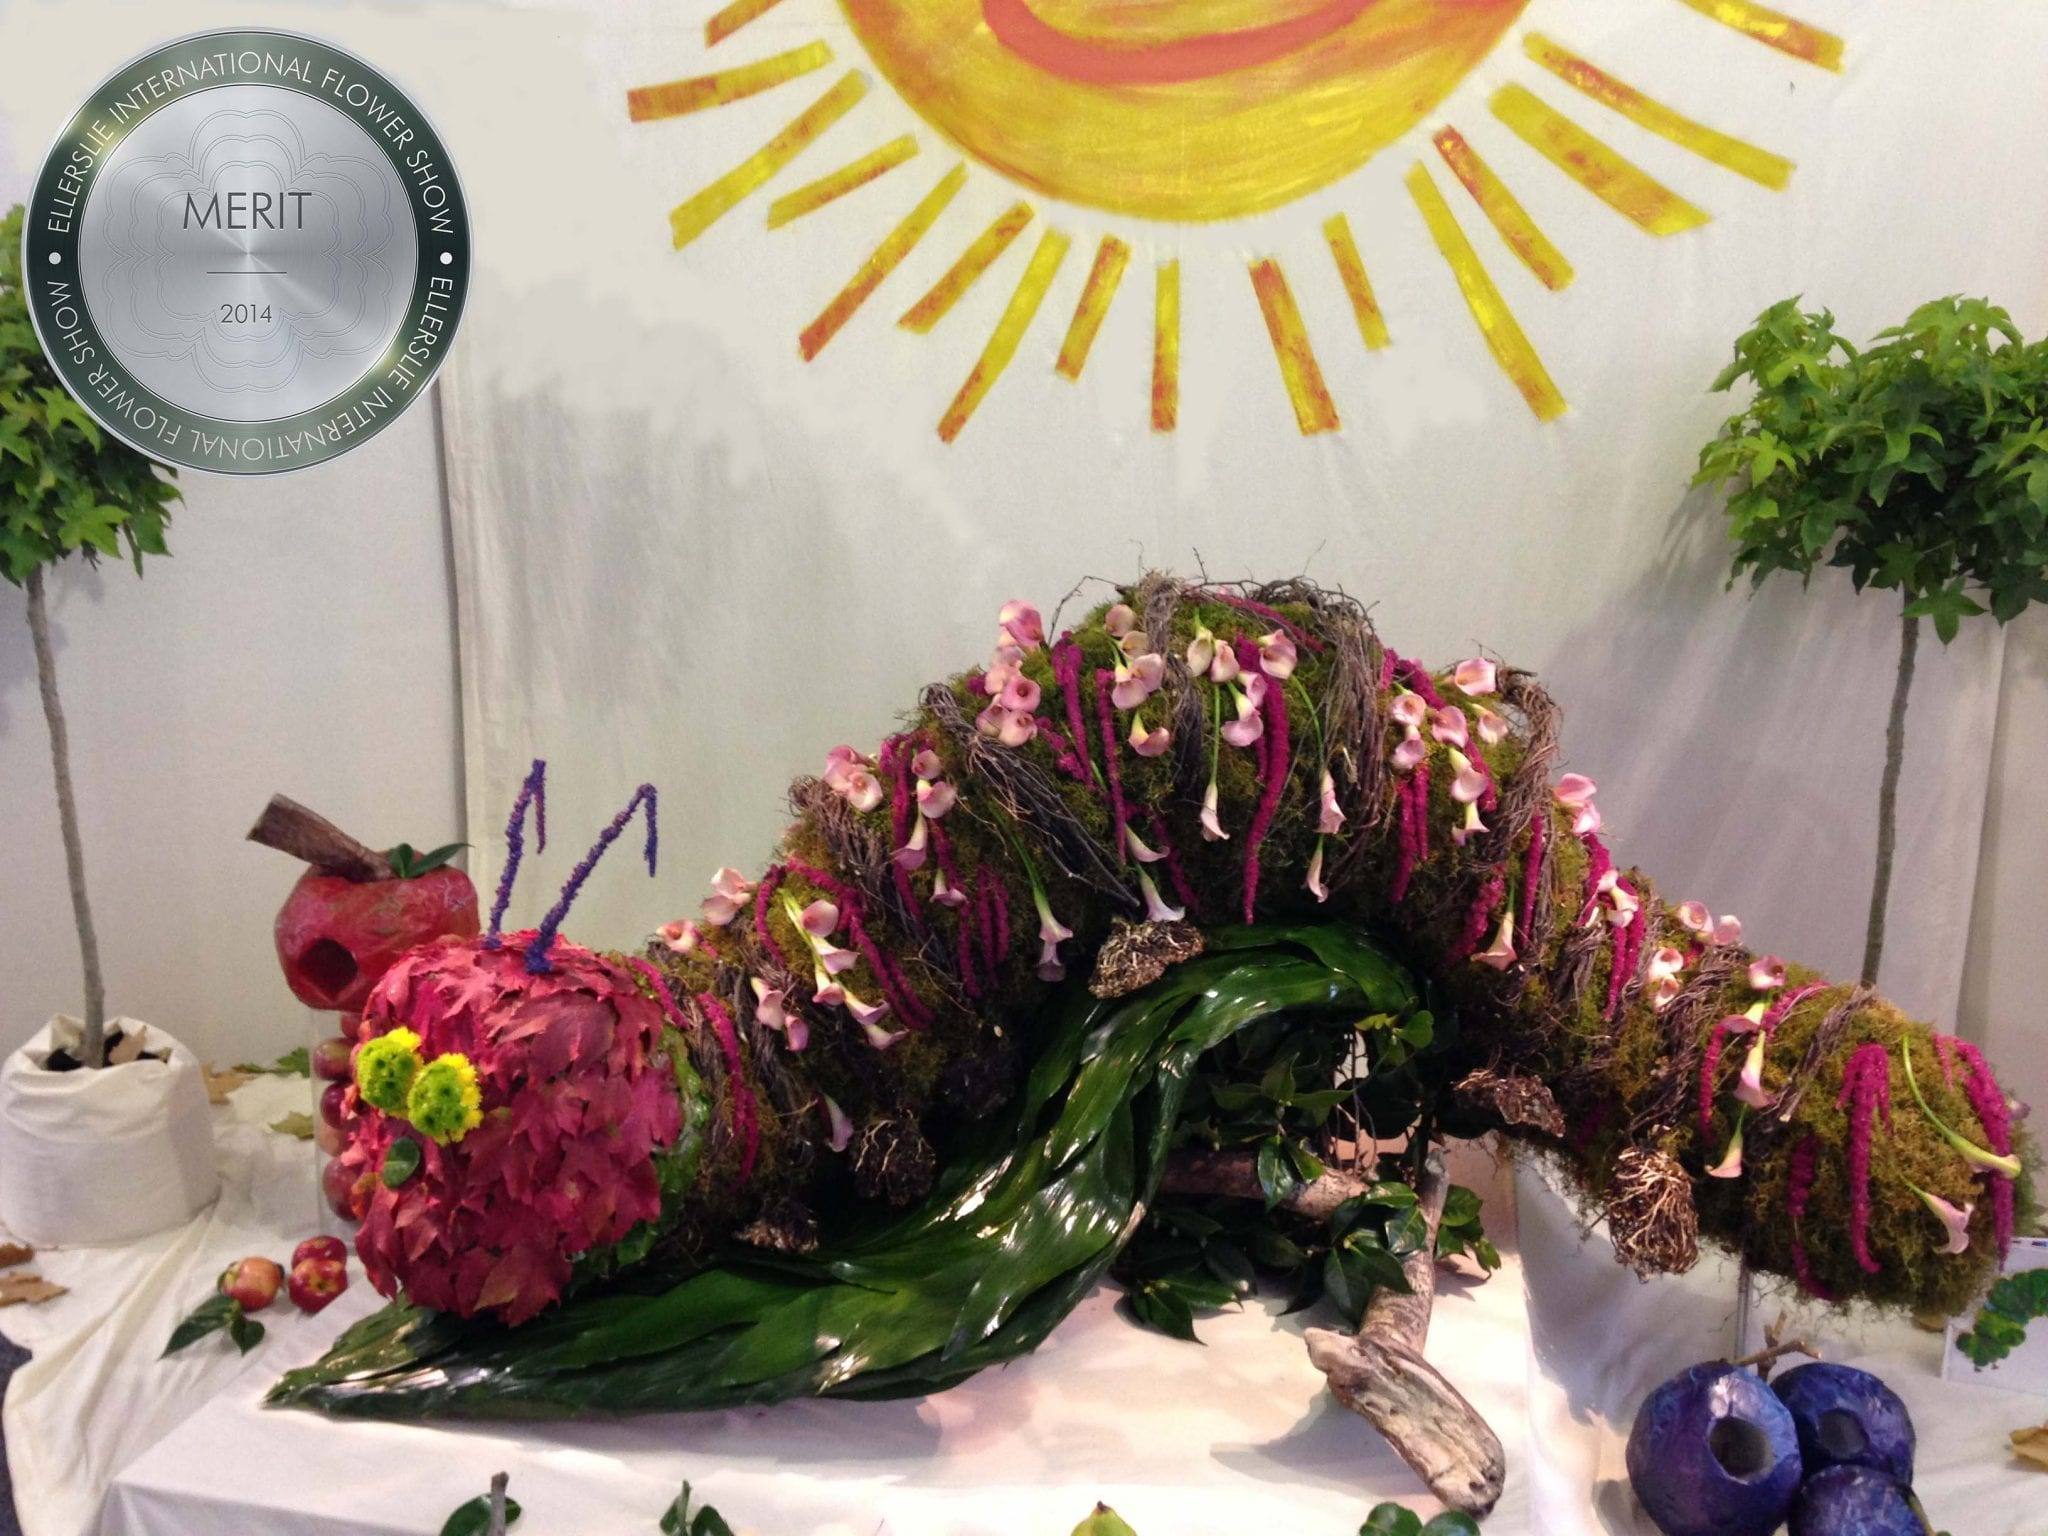 Kim Chan Events | the very hungry catepillar award winning display at the Ellerslie Flower Show